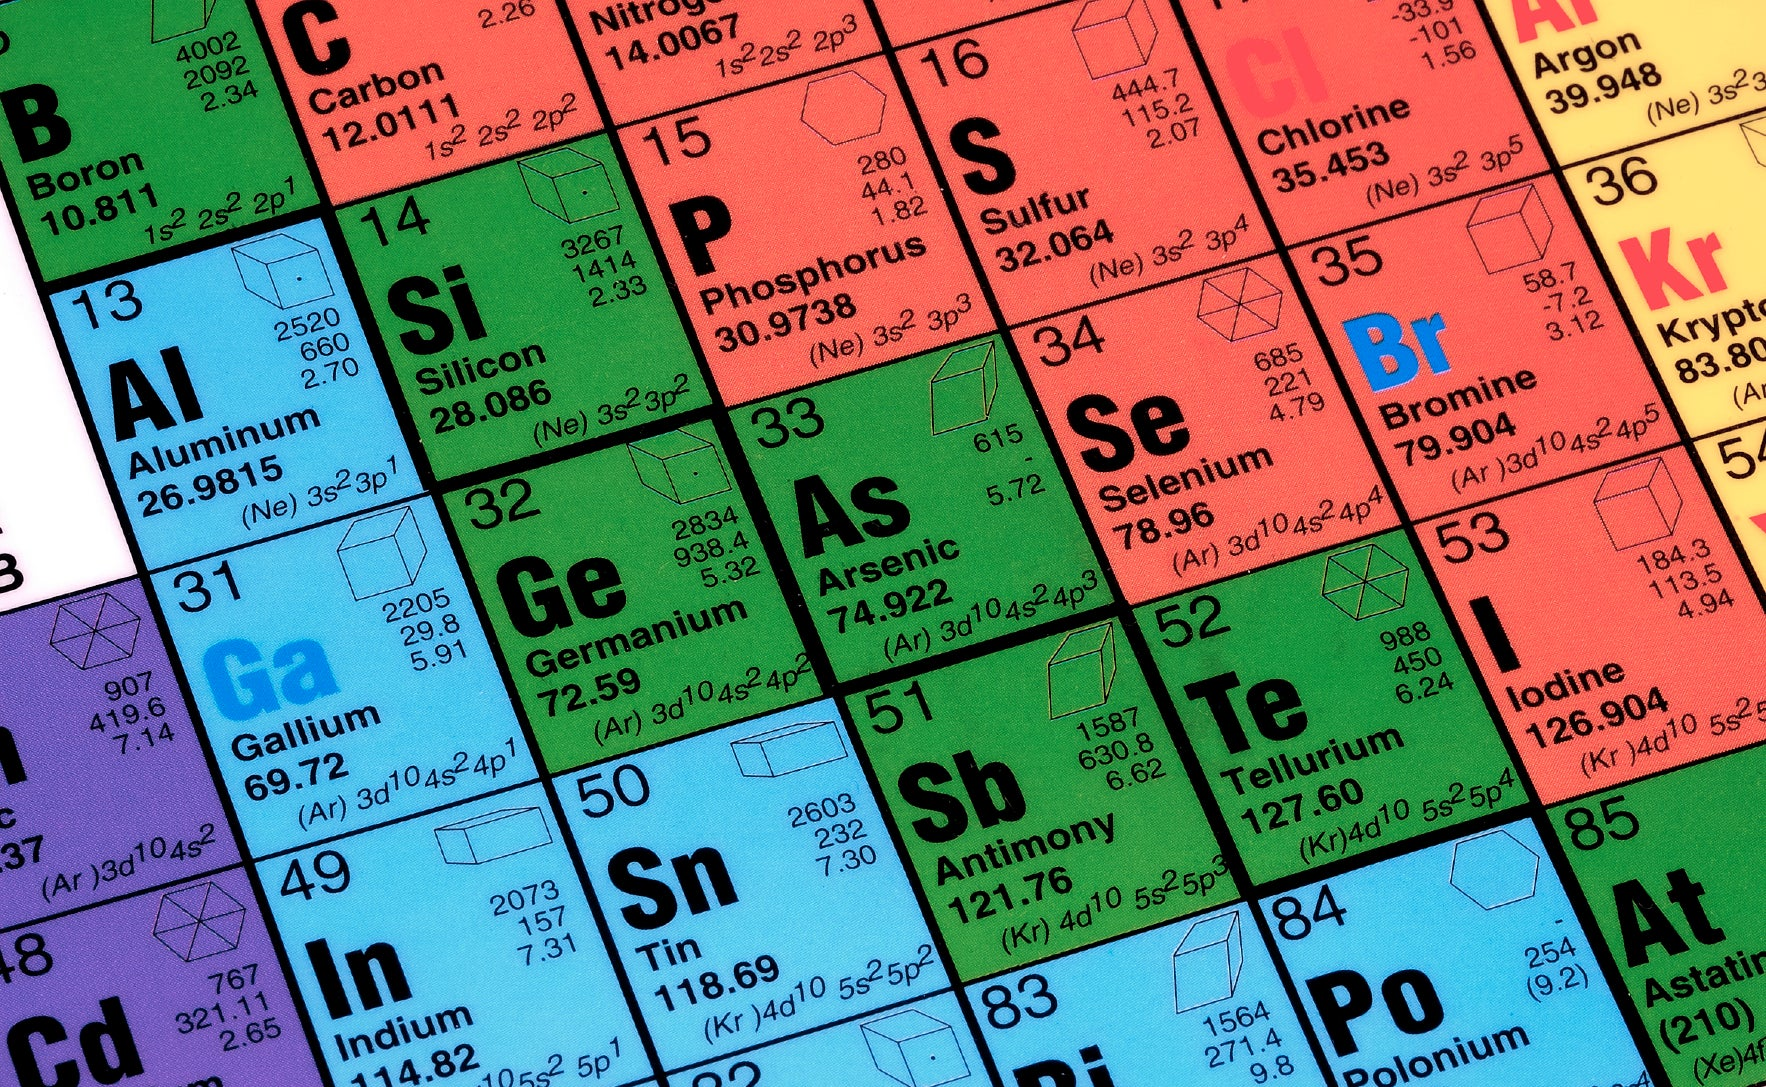 More Periodic Table Awesomeness